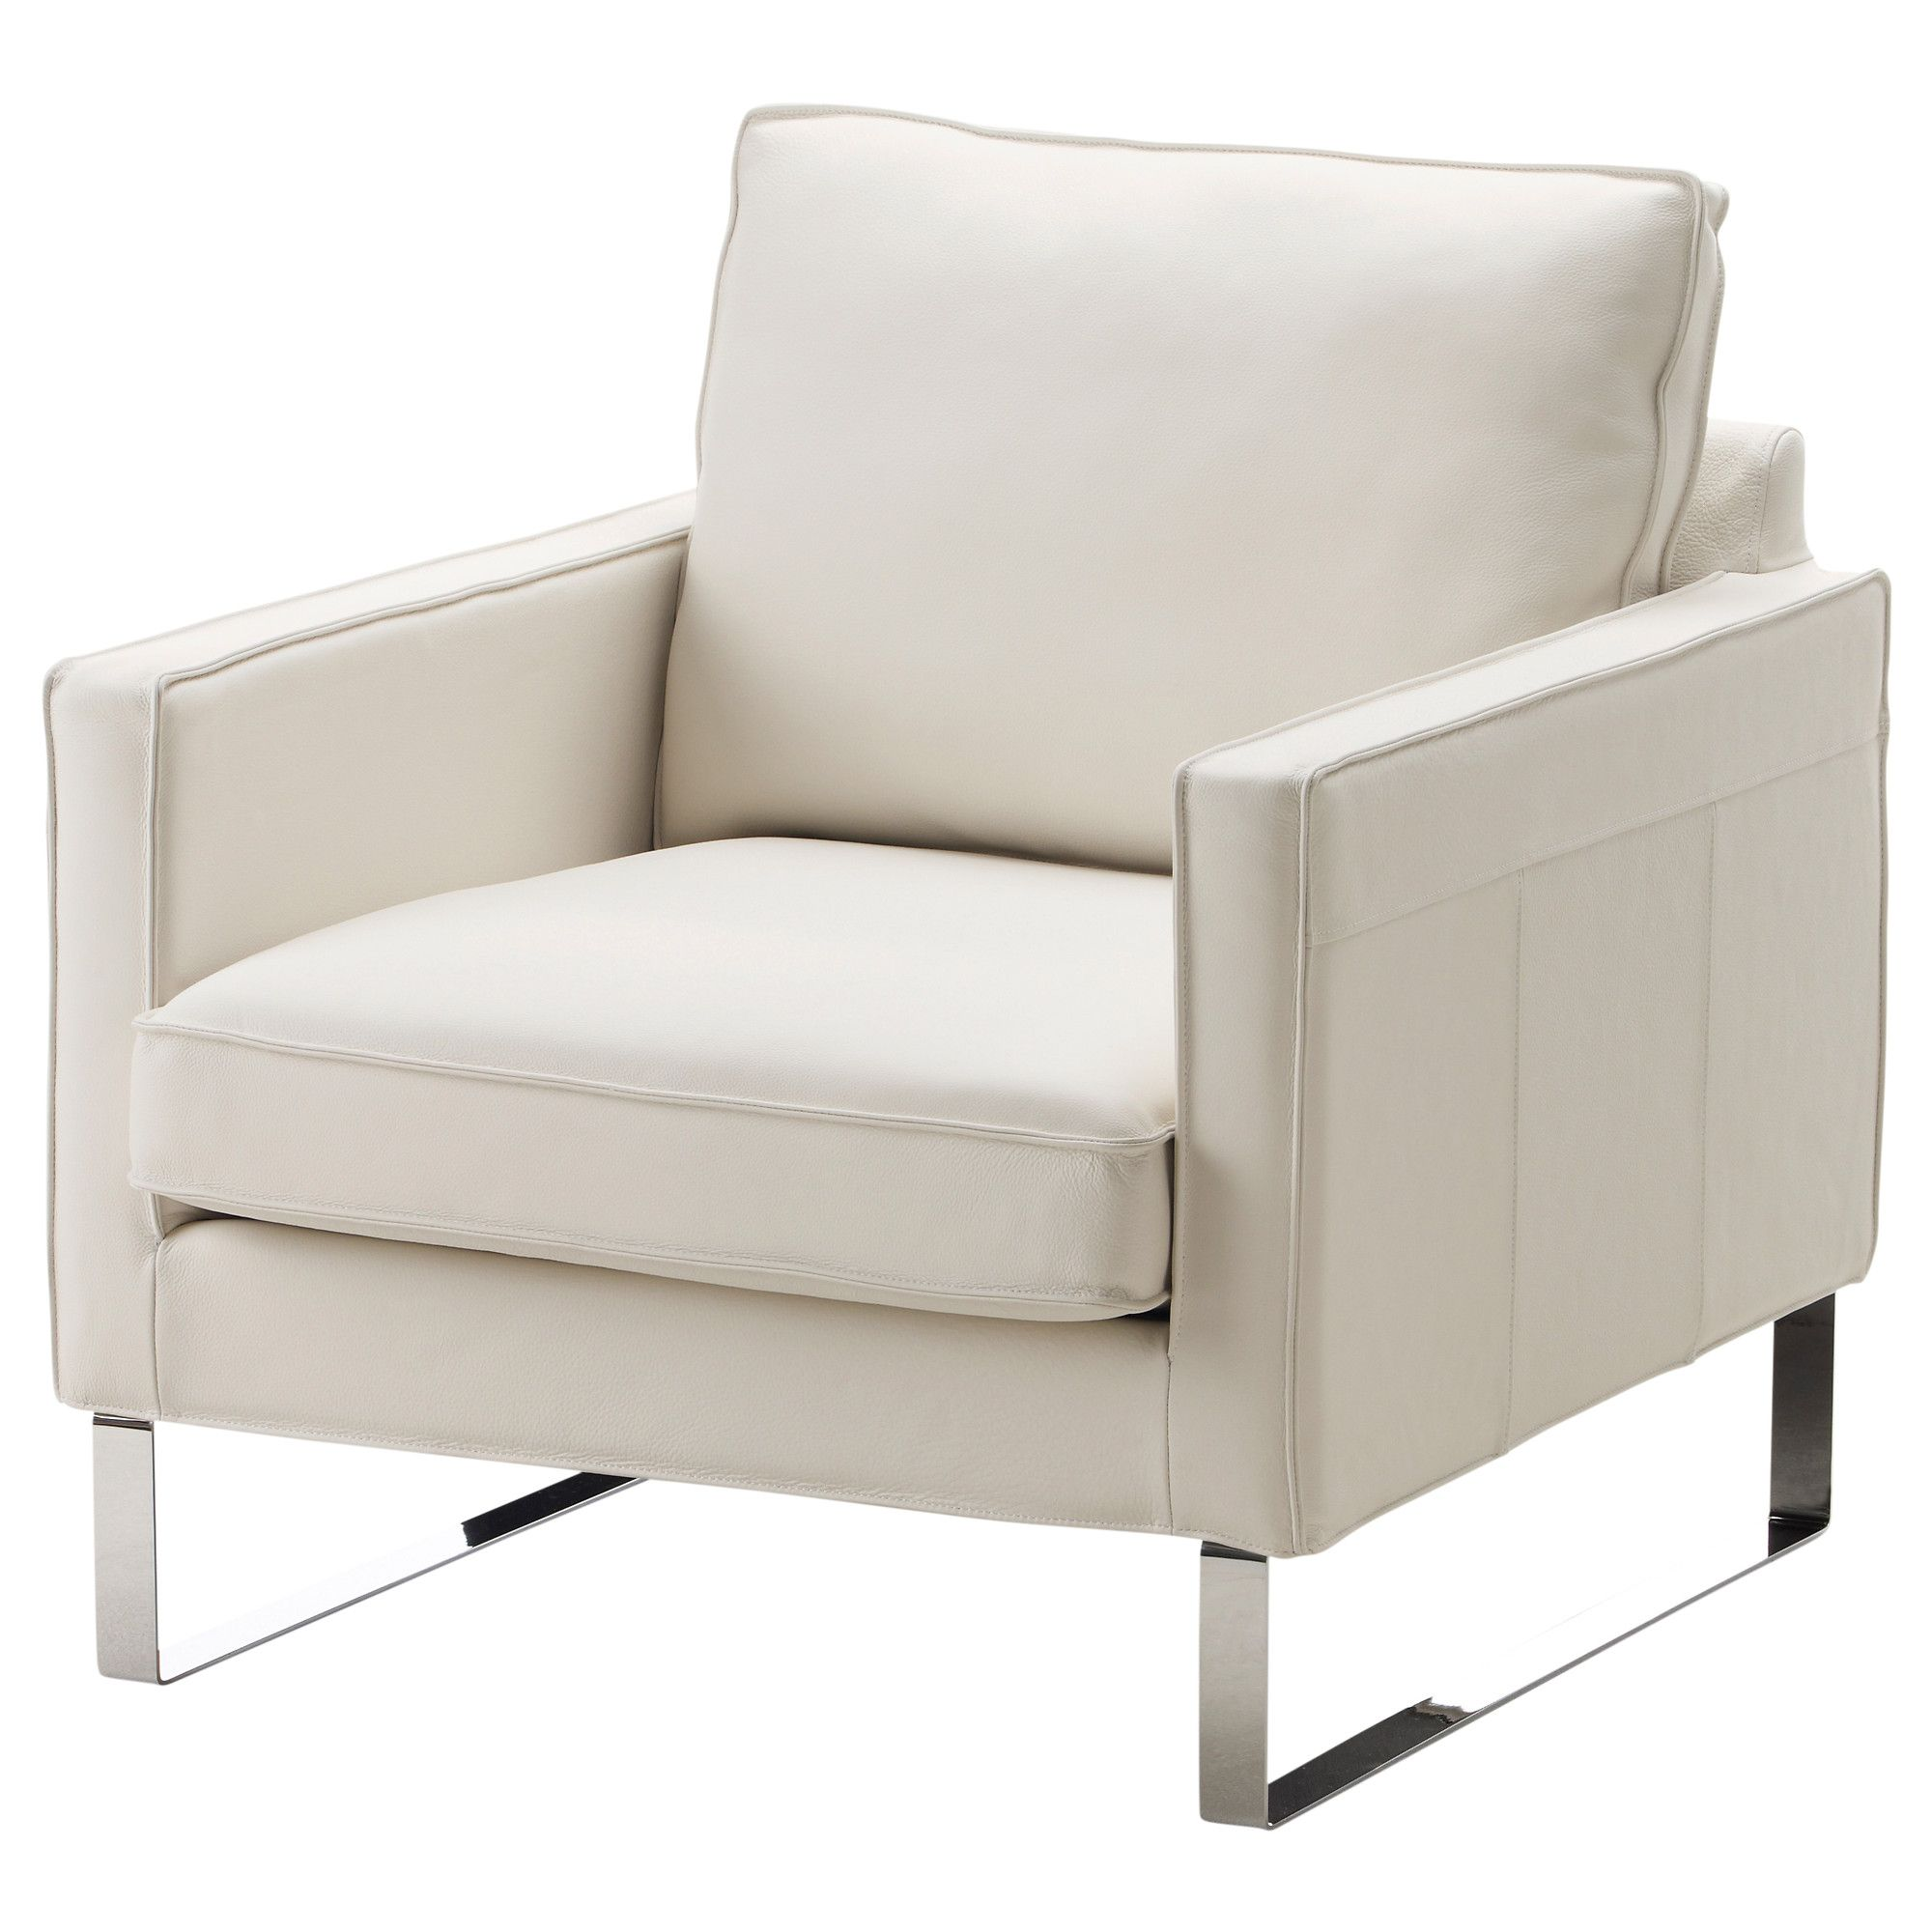 Mellby Ikea Ikea Mellby Chair Grann White Soft Hardwearing And